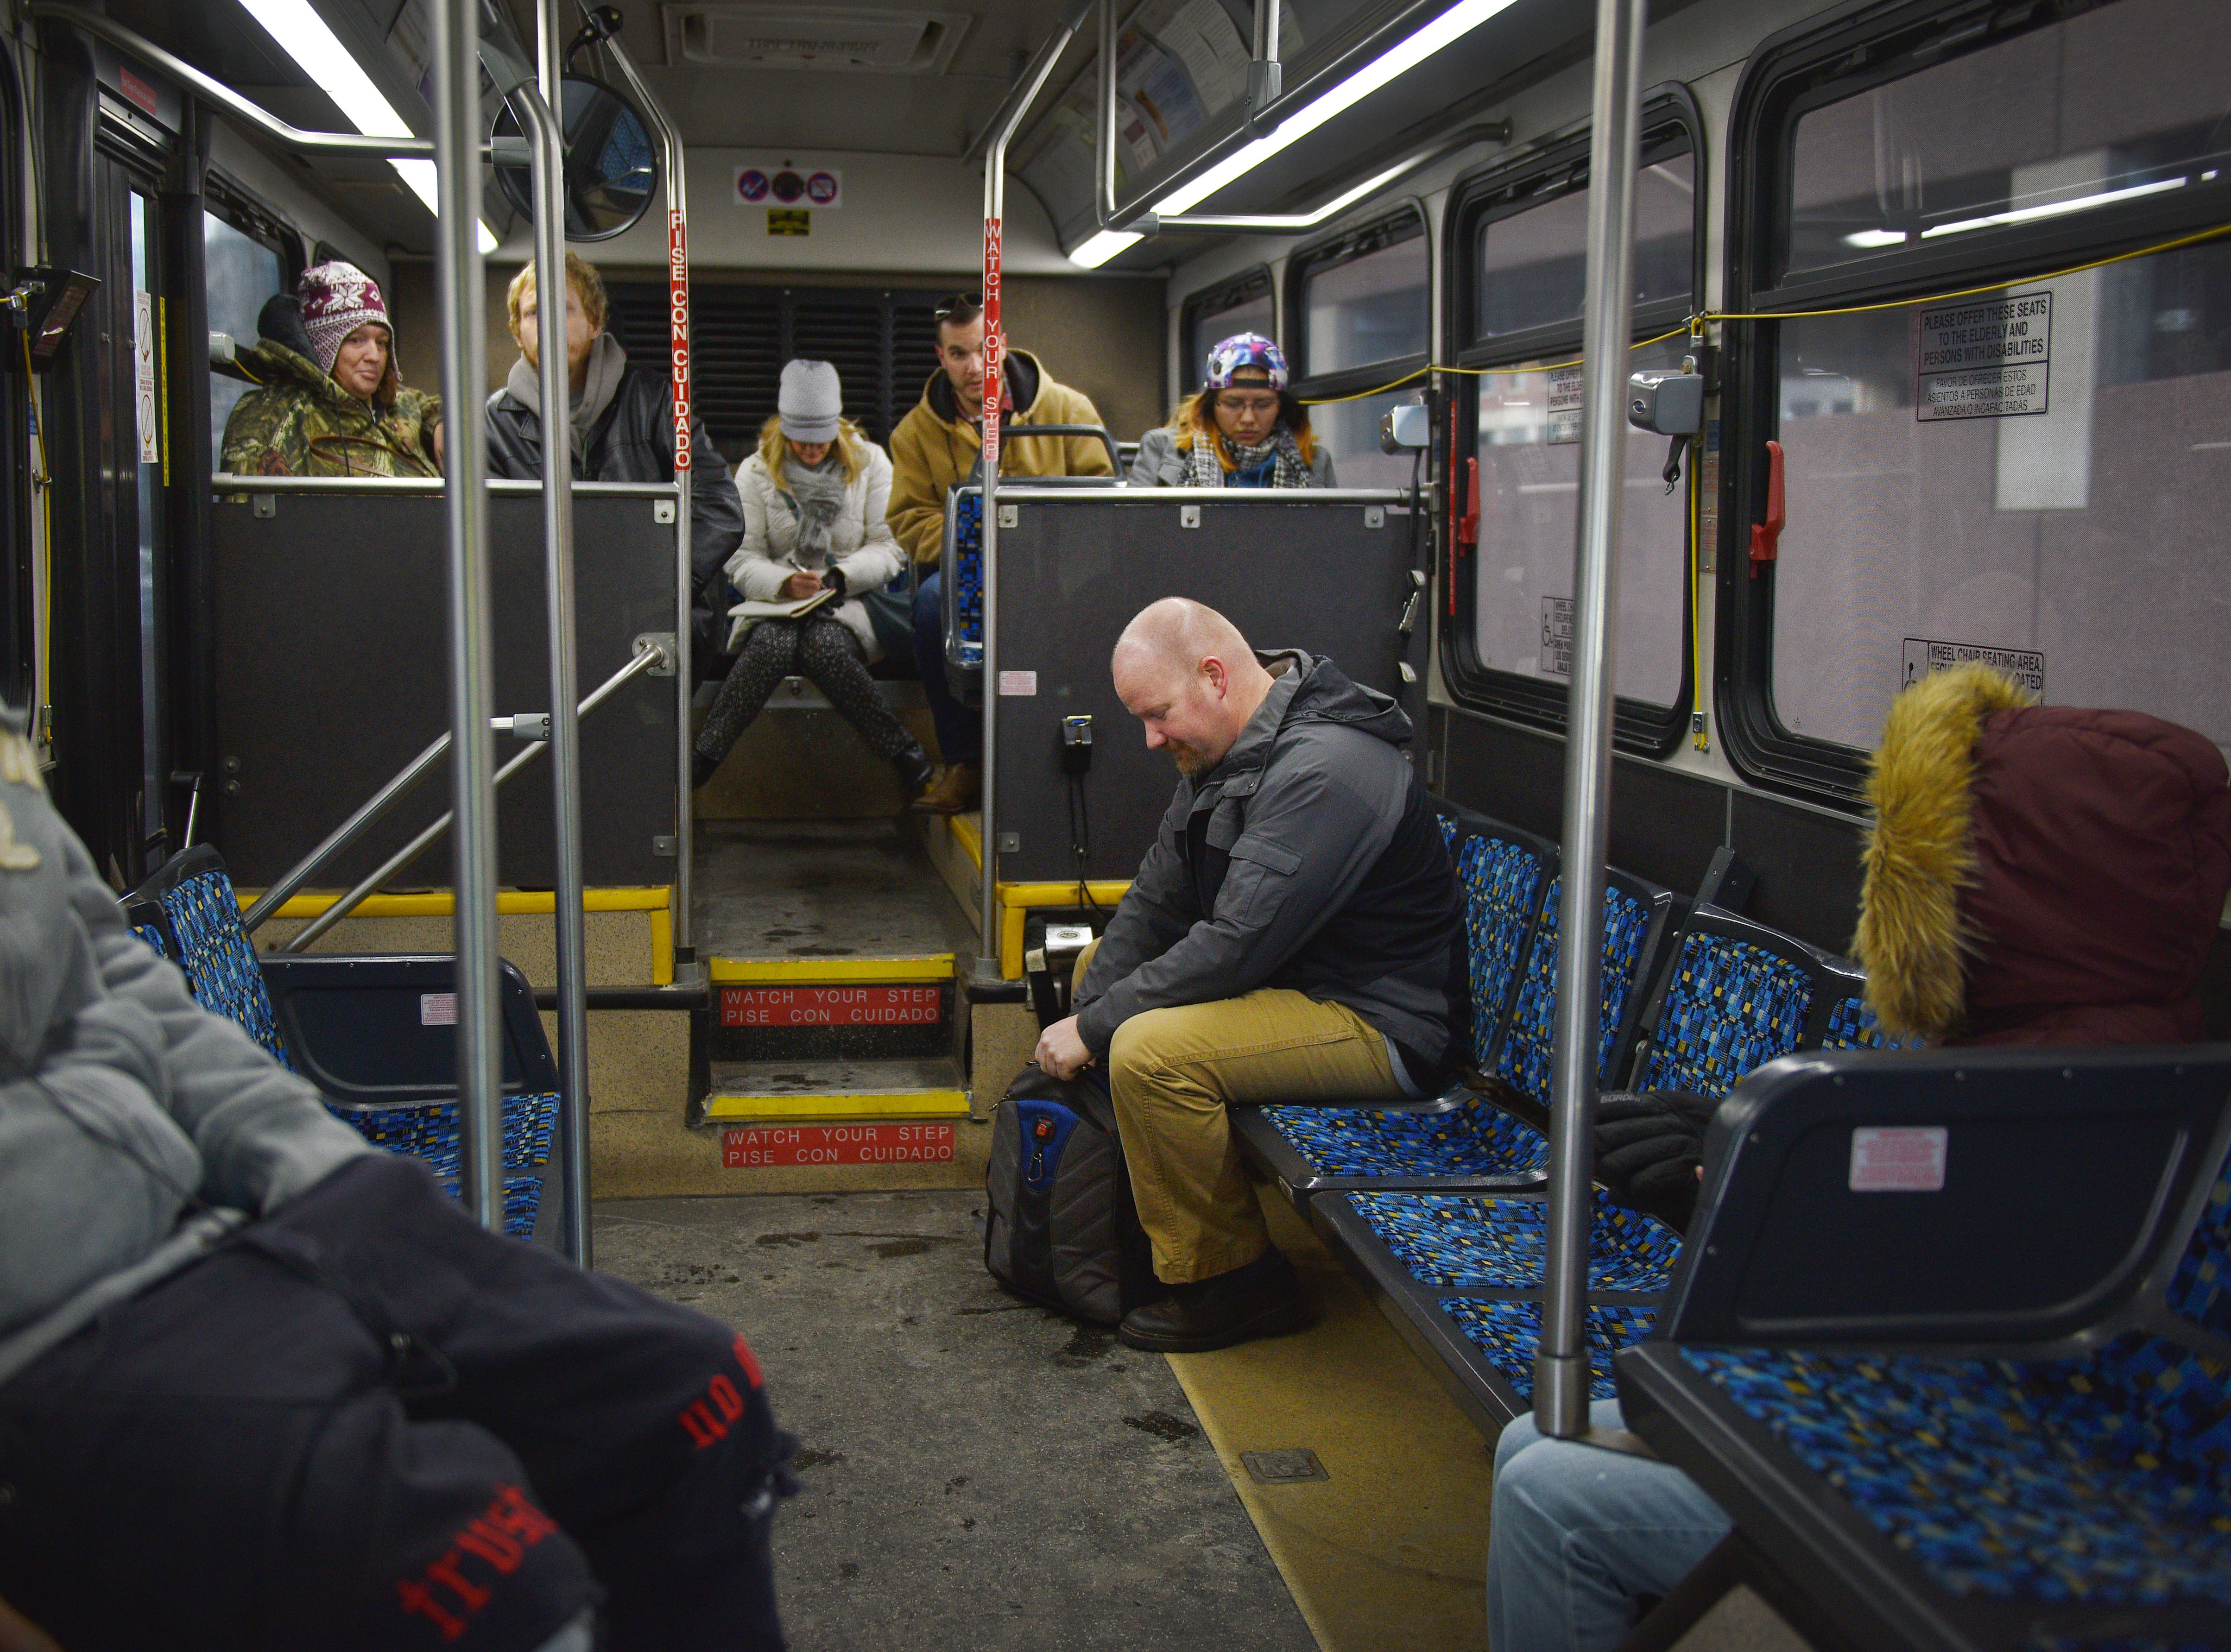 Traffic services Sergeant Kevin Henkel, right, gets on a city bus Friday, Dec. 7, in Sioux Falls. Public transit costs taxpayers millions each year. That's why a task force has been set up to study the issue with assistance from staff at the Harvard Bloomberg Institute. A part of the task force's work is engaging bus riders and the general public, so members were at the bus depot at 9 a.m. Friday to talk to riders and ride the buses.